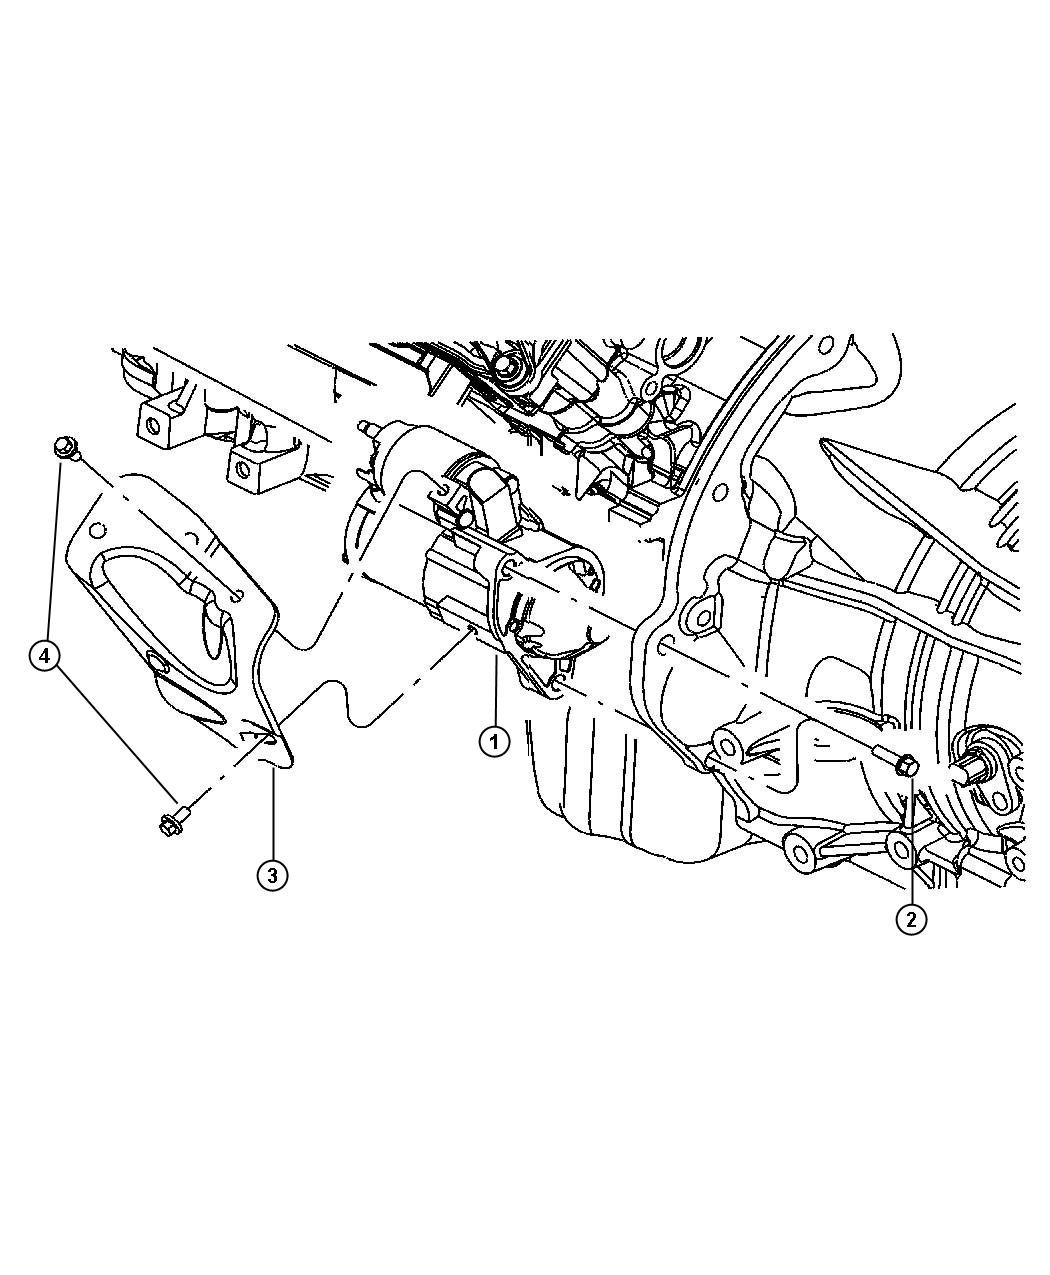 Jeep Commander Starter And Related Parts